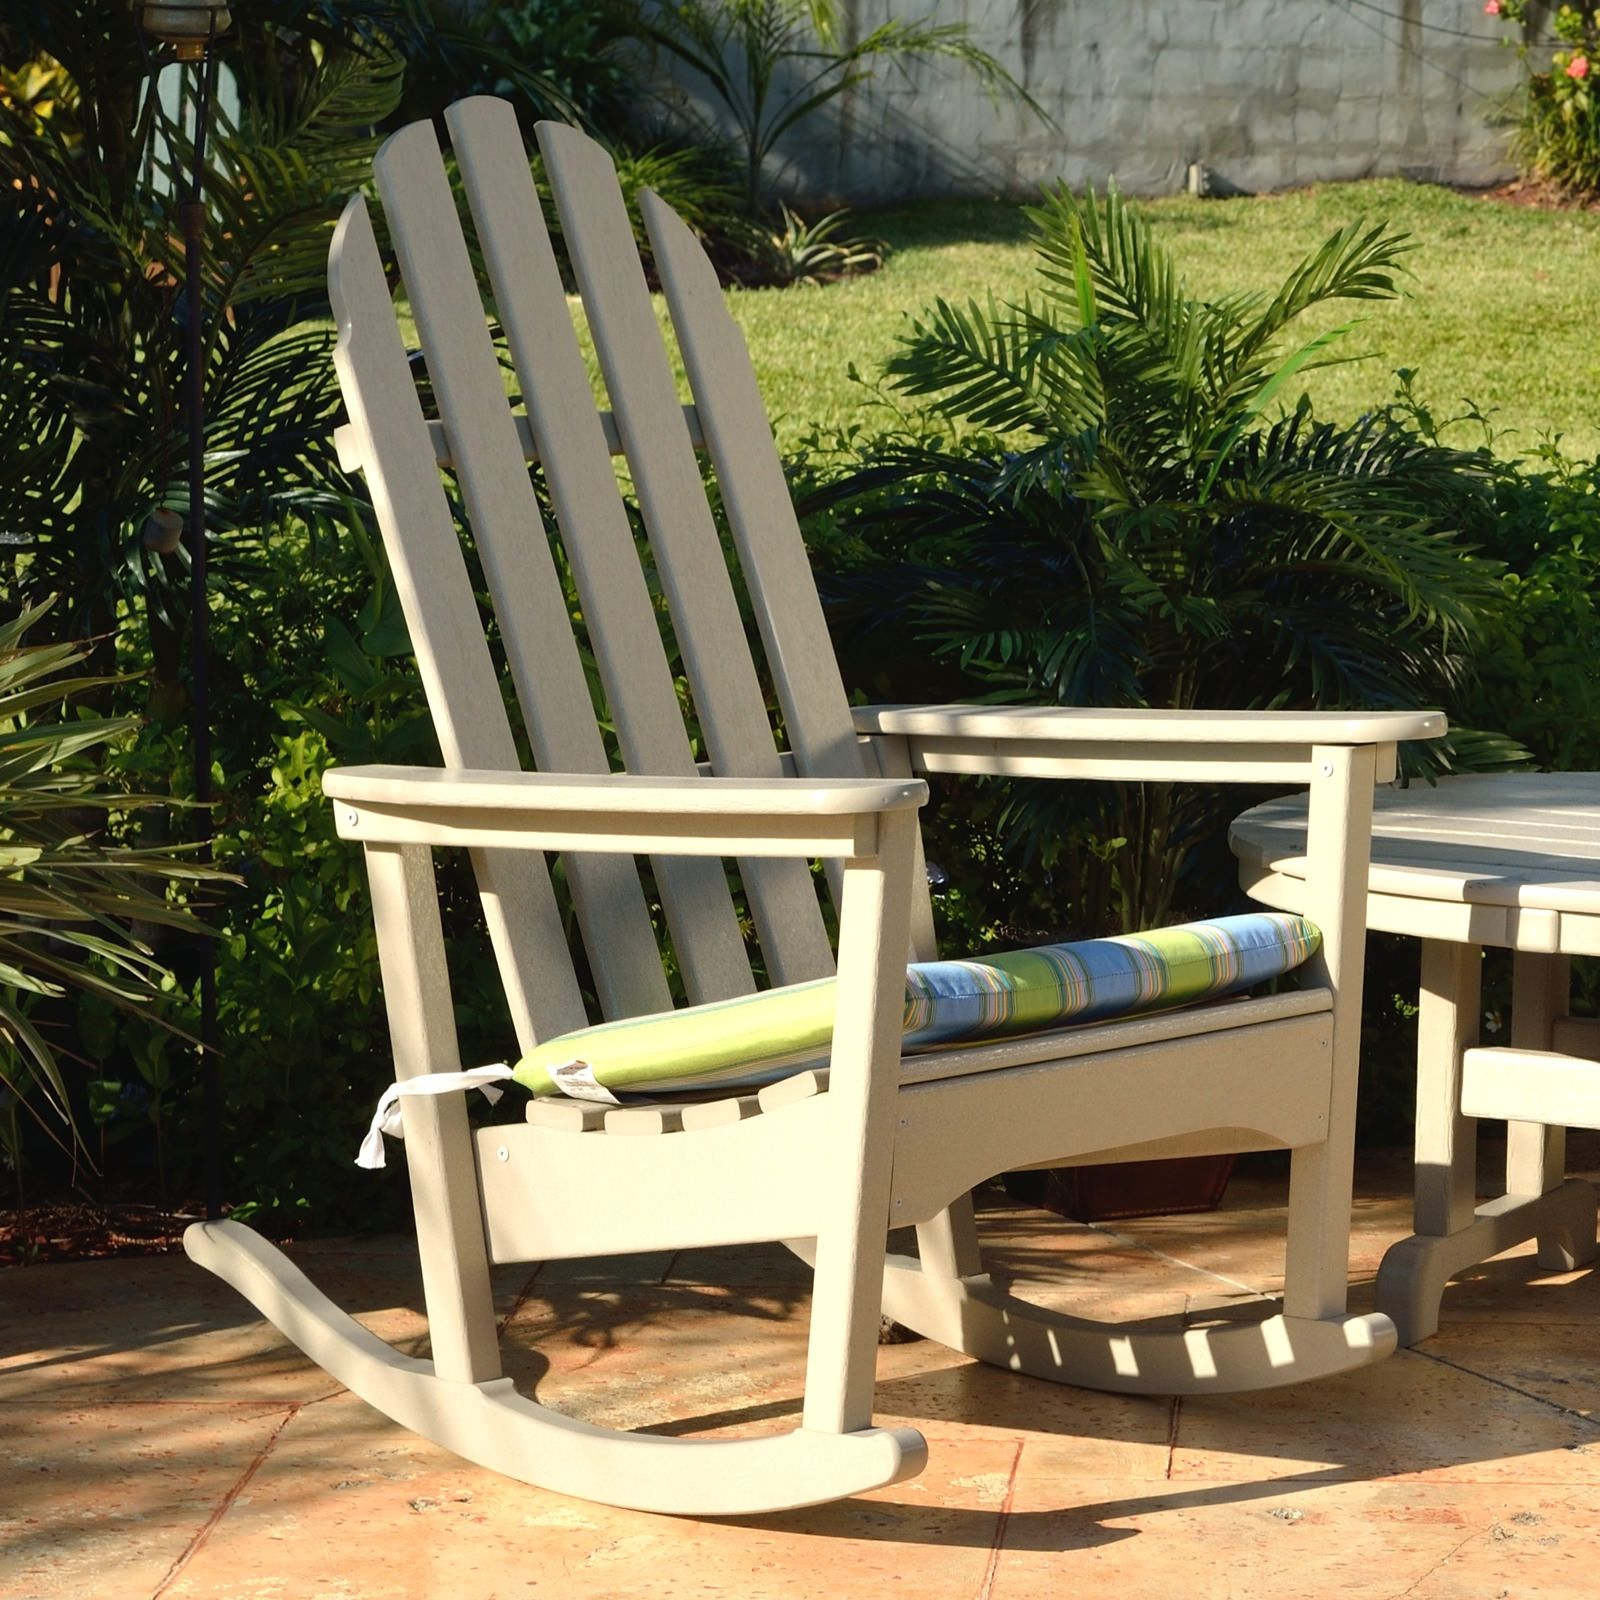 Add a personal touch to your polywood adirondack rocking